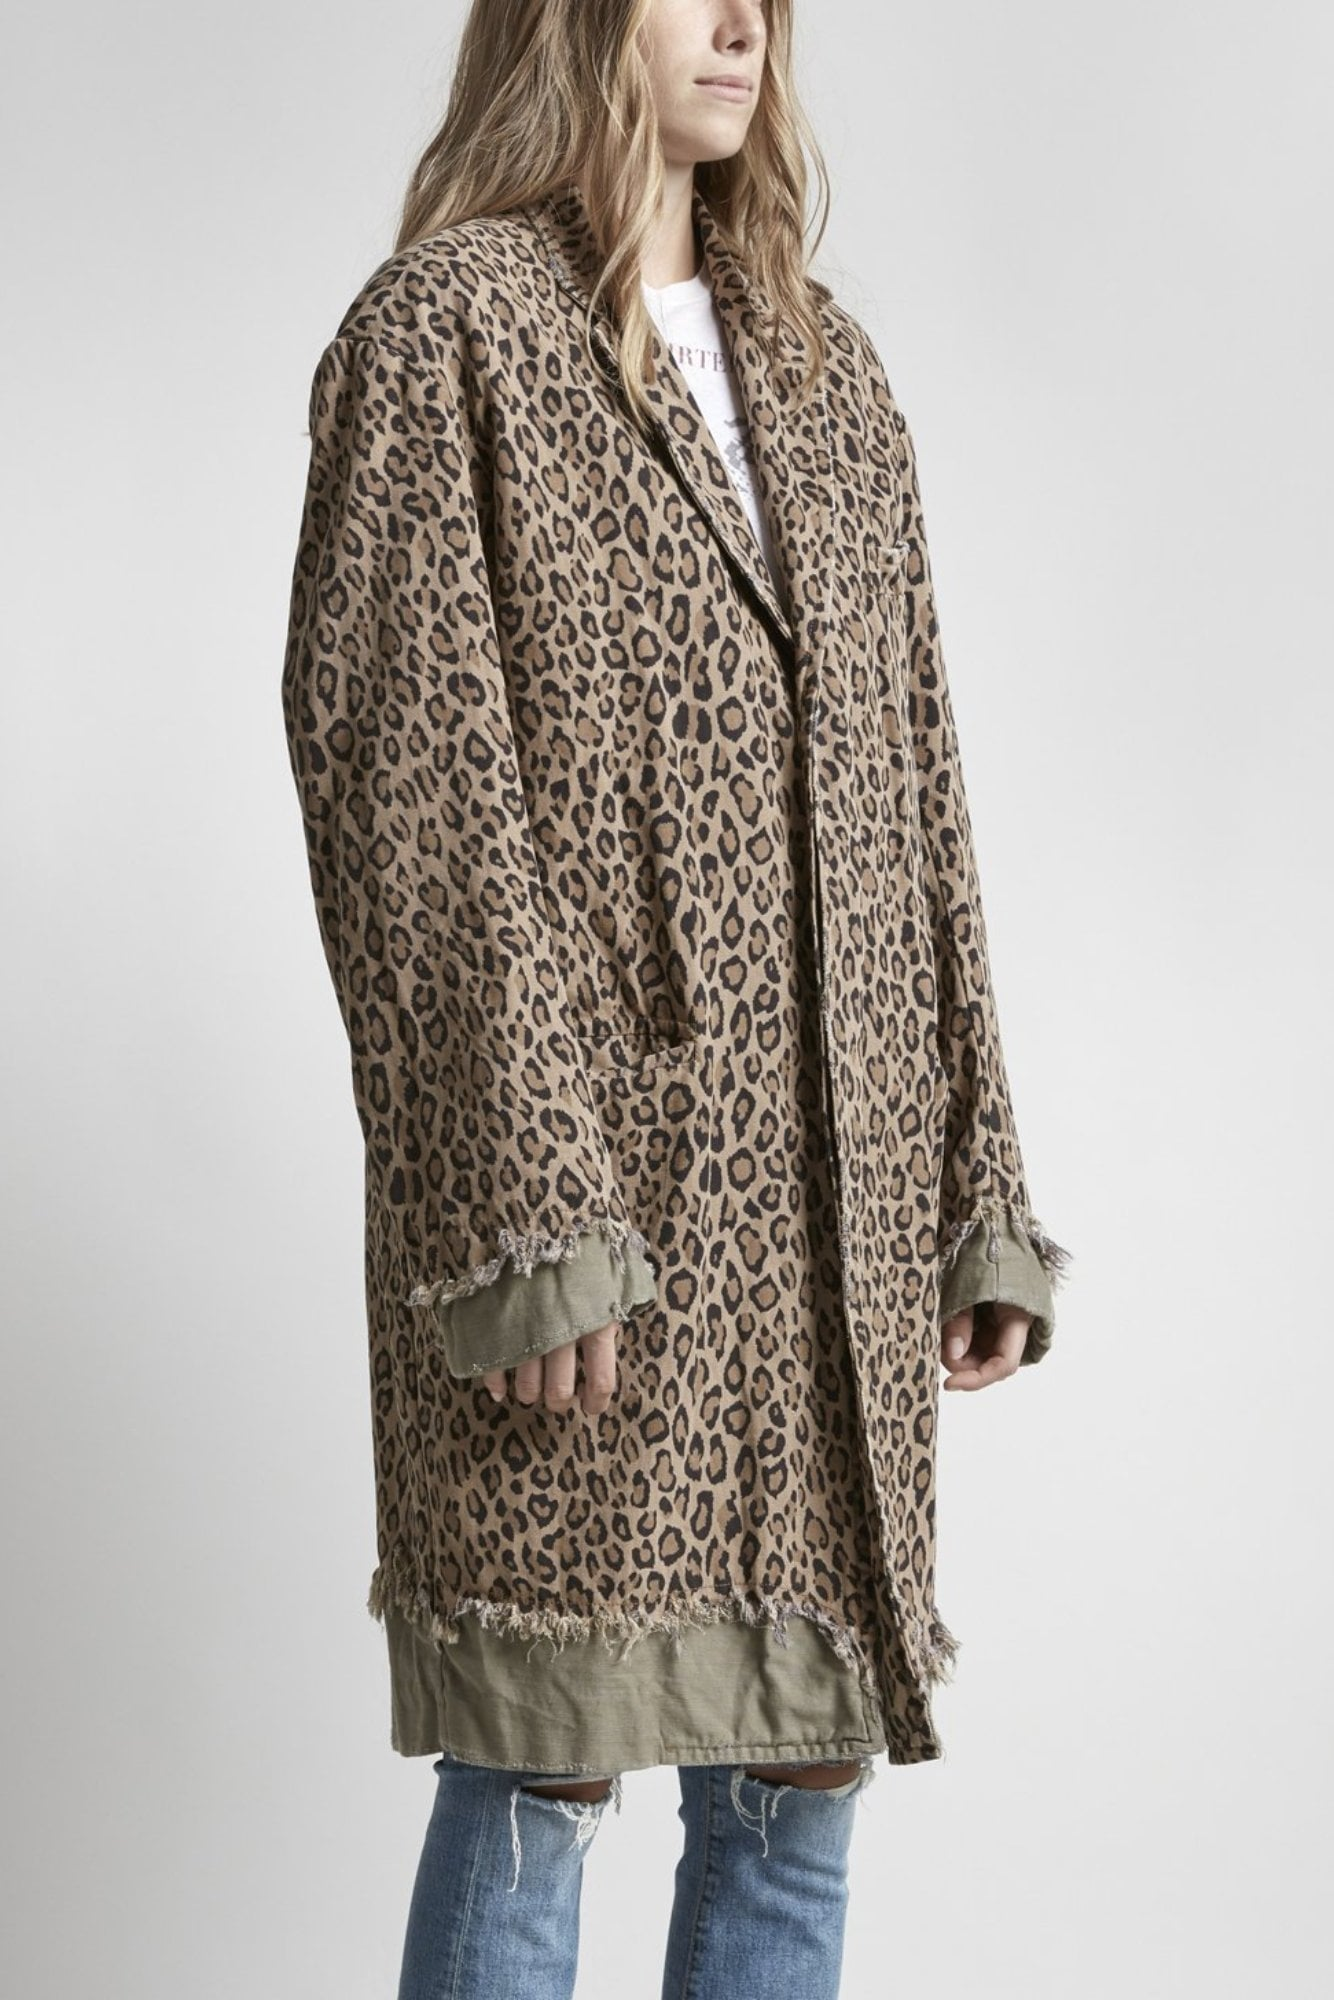 Shredded Coat - Leopard w/ Olive